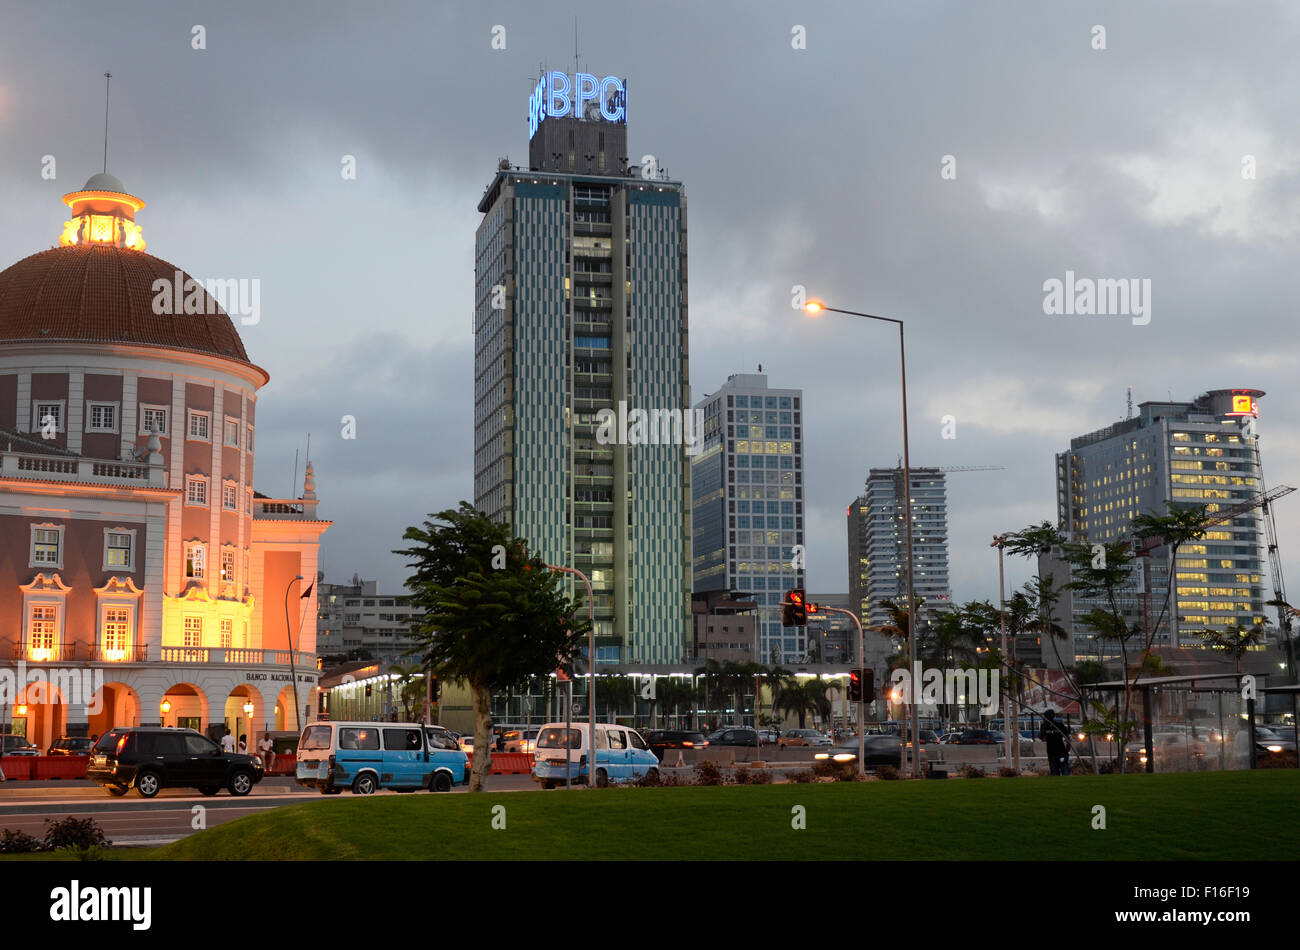 ANGOLA Luanda, National Bank (left) and Sonangol office building, the National Oil Company (right) at sea promenade, - Stock Image